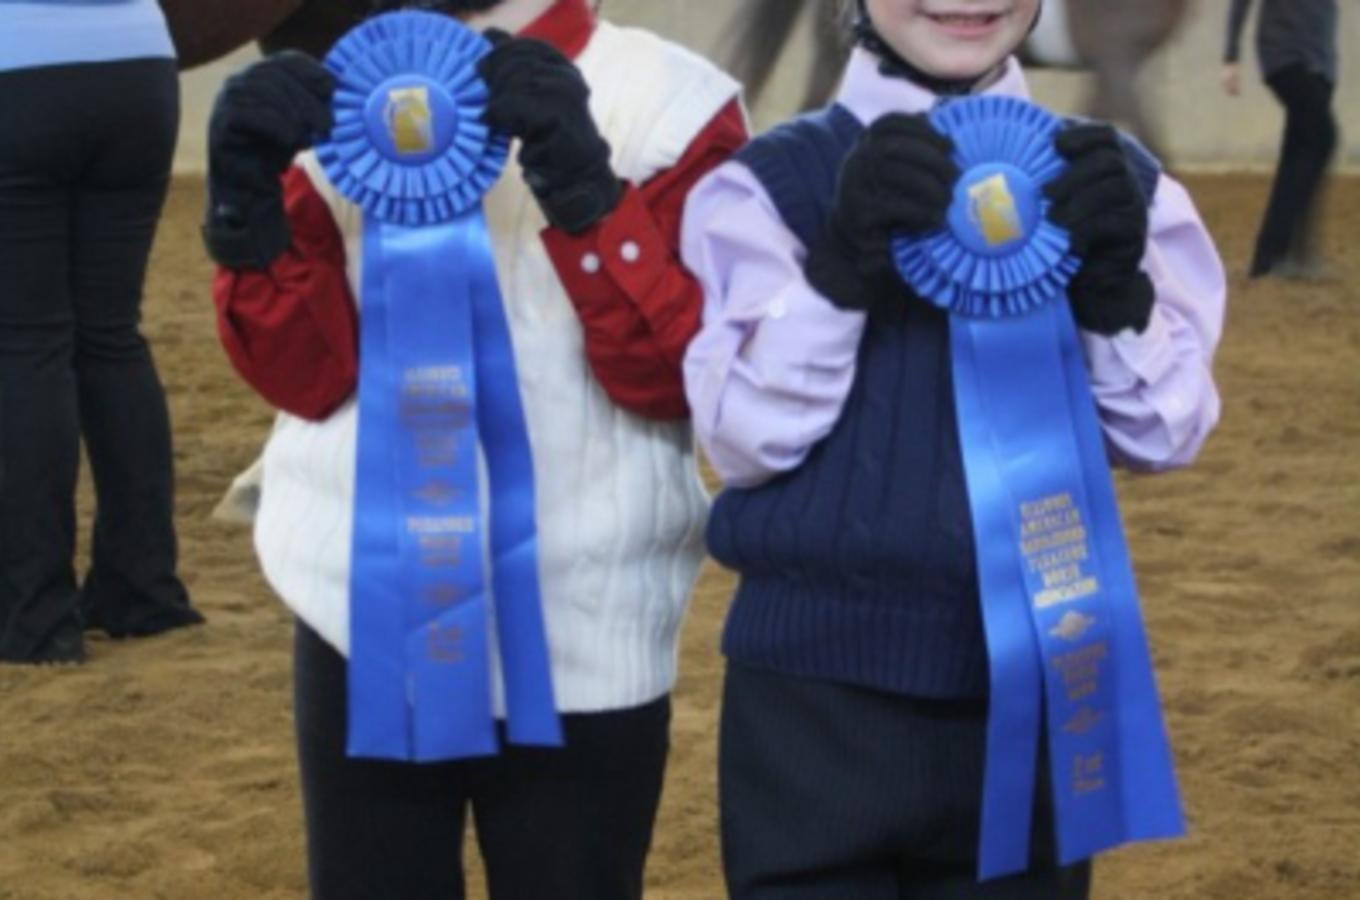 Applewood Farm Two Girls With Blue Ribbons